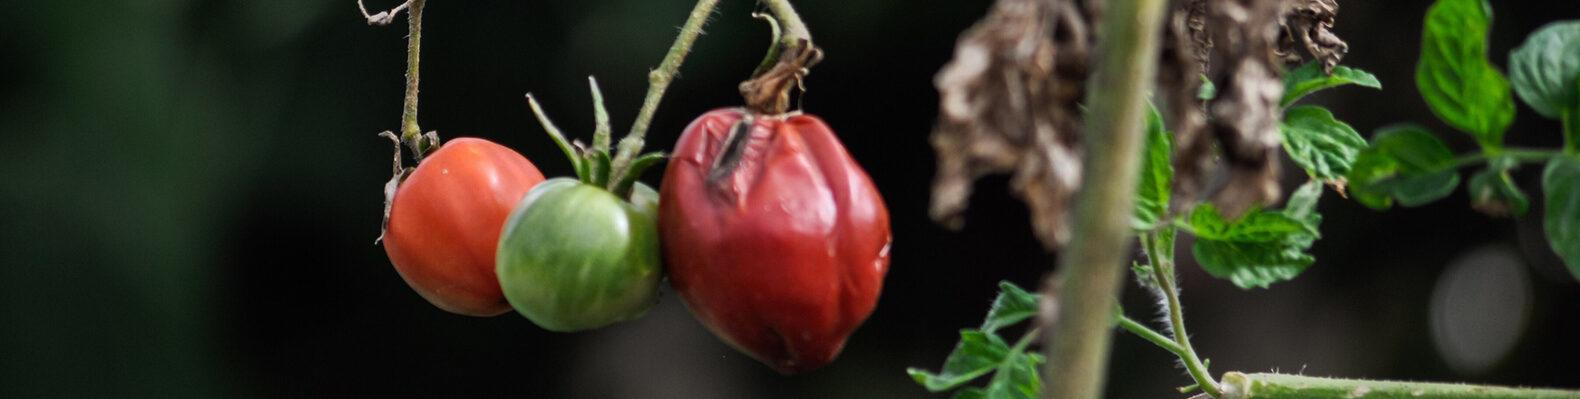 rotting tomato on the vine